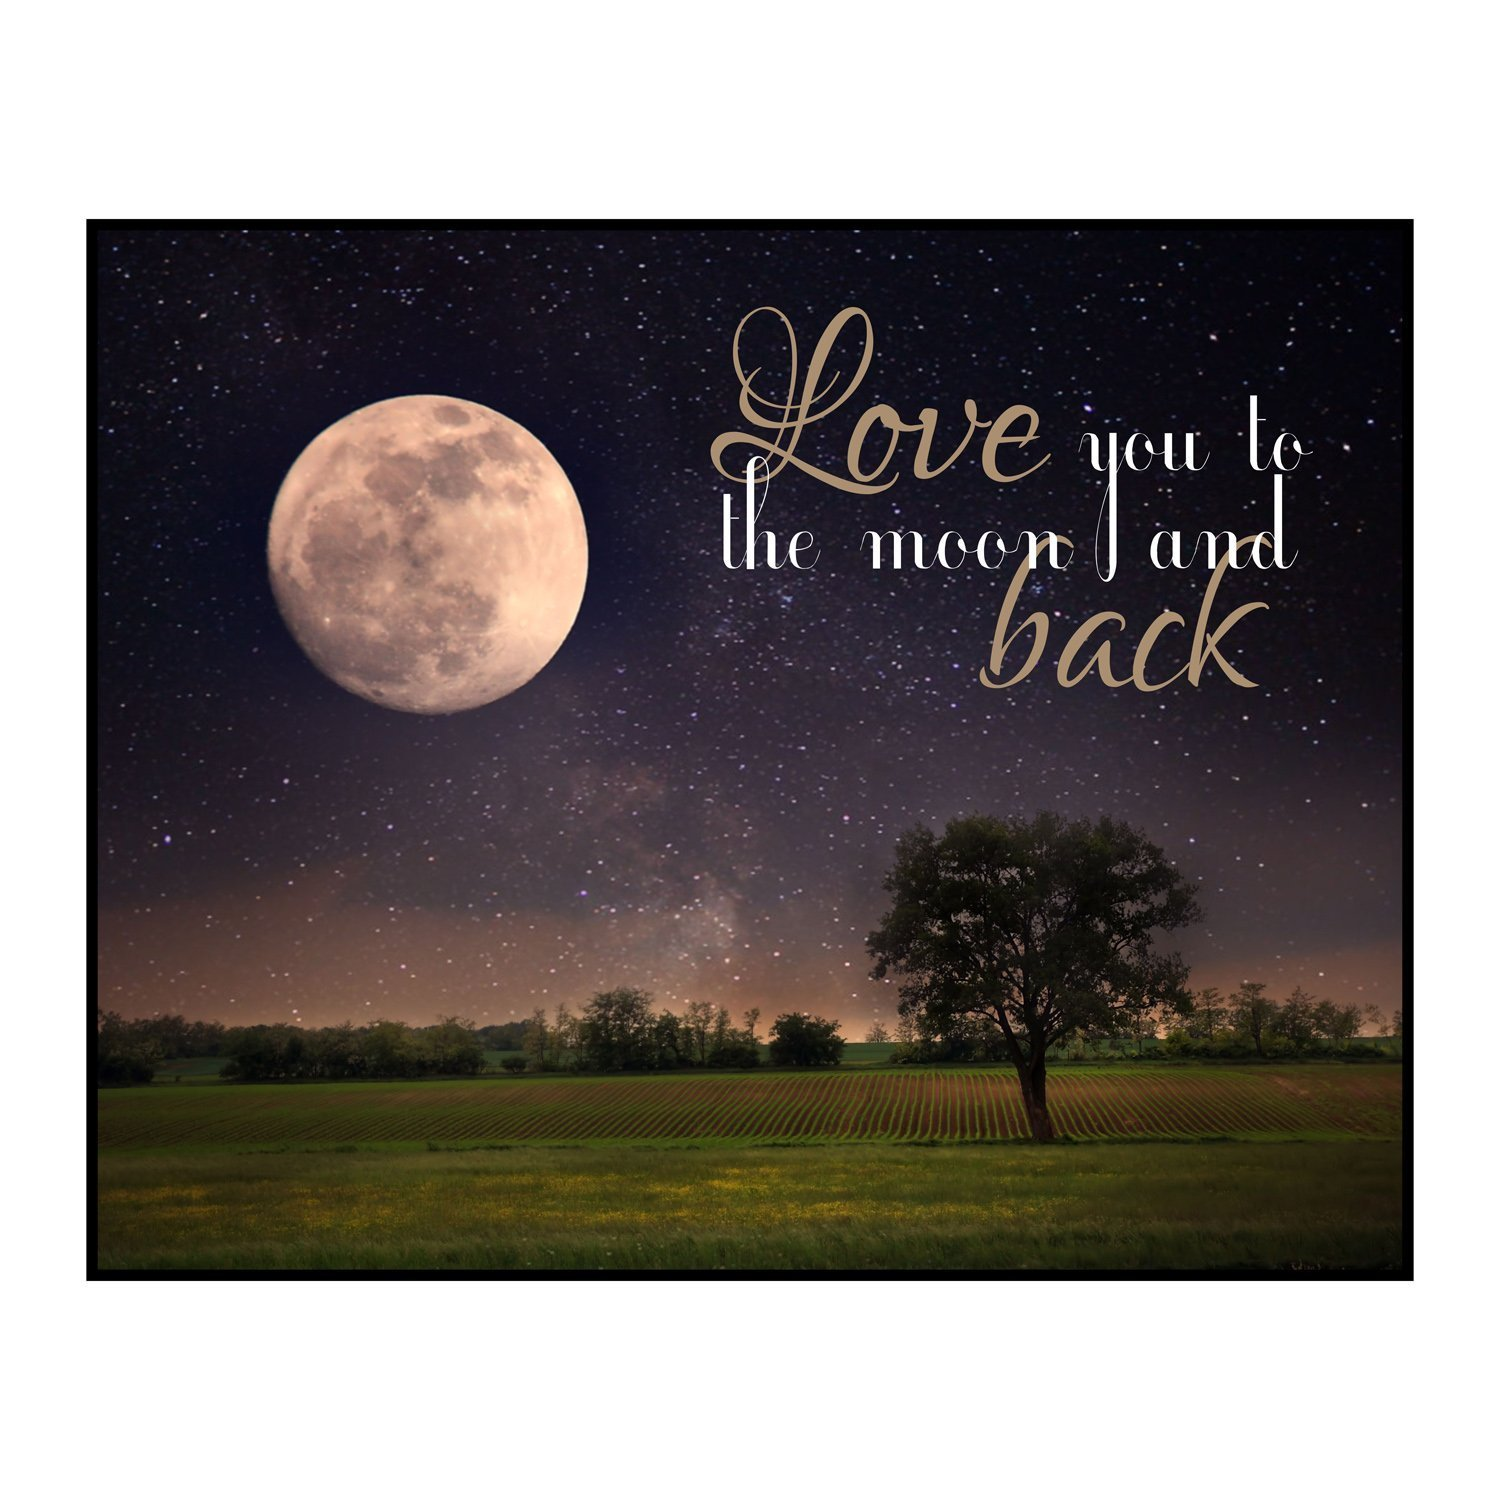 Love You to the Moon and Back Crop Field 12 x 15 Overlay Wood Wall Art Sign